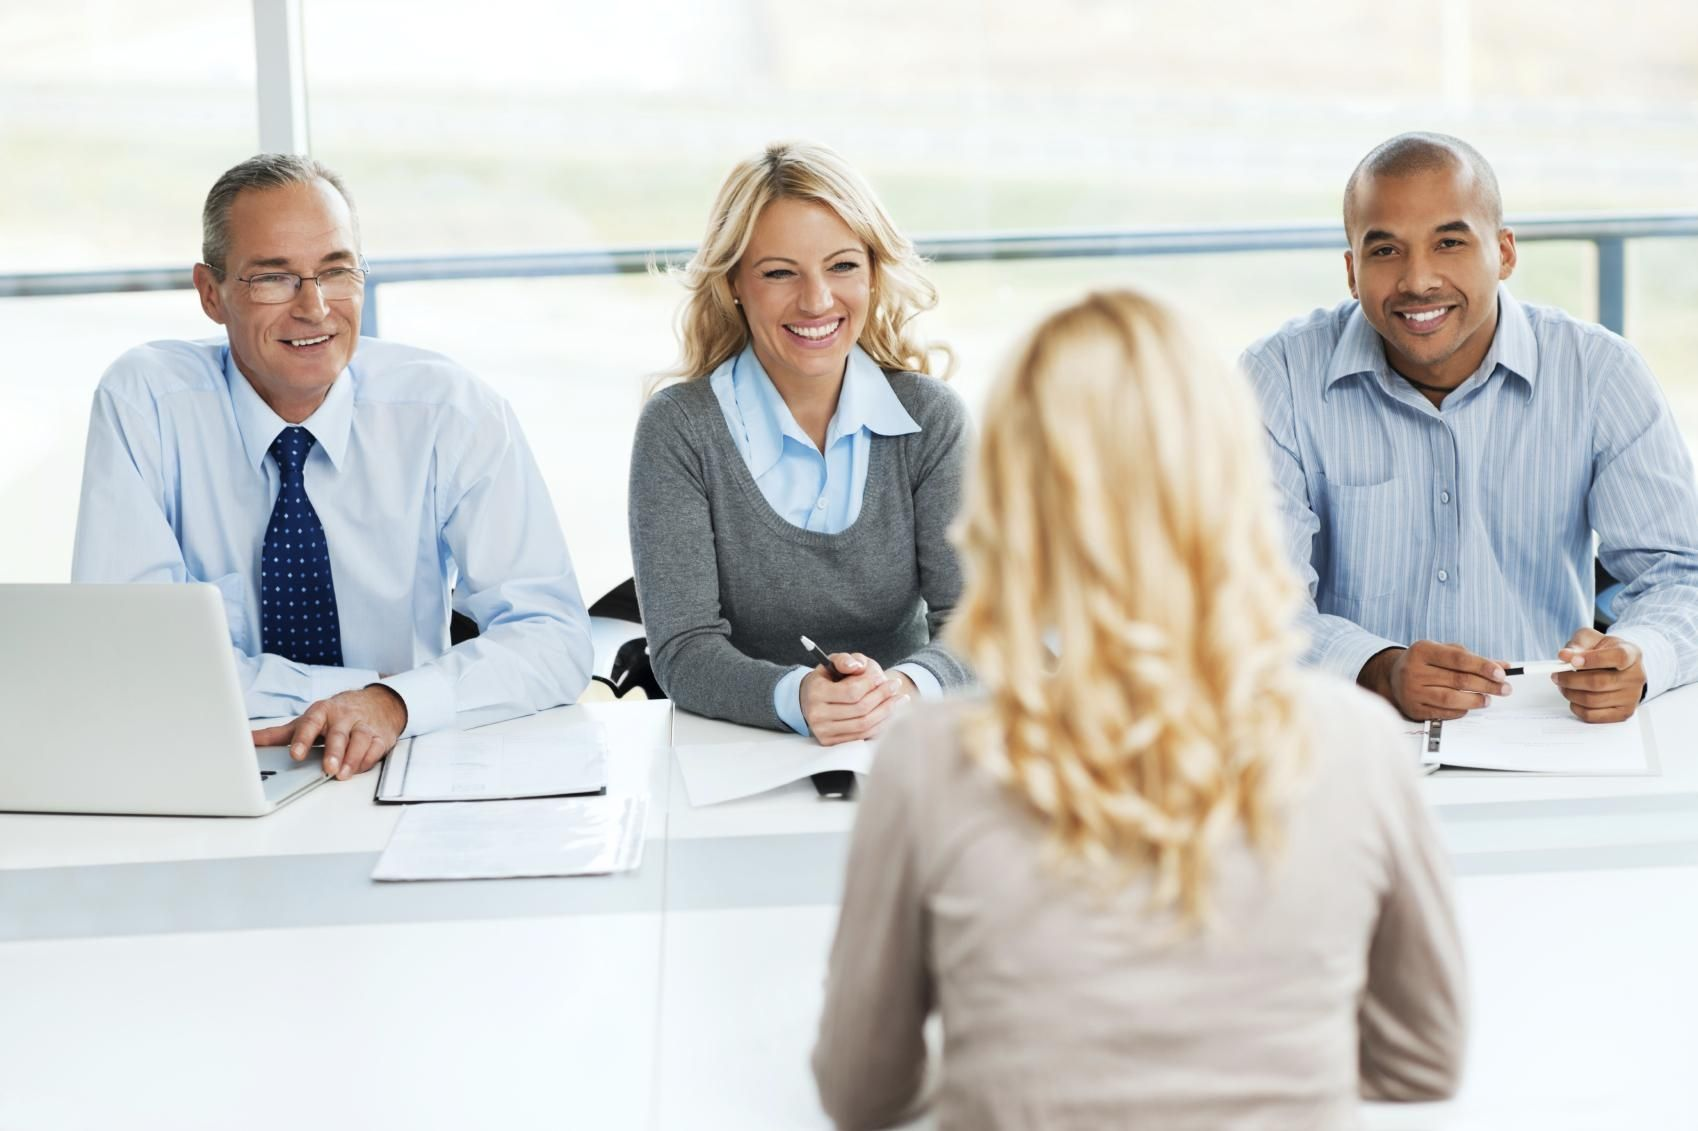 interview dream meaning, dream about interview, interview dream interpretation, seeing in a dream interview